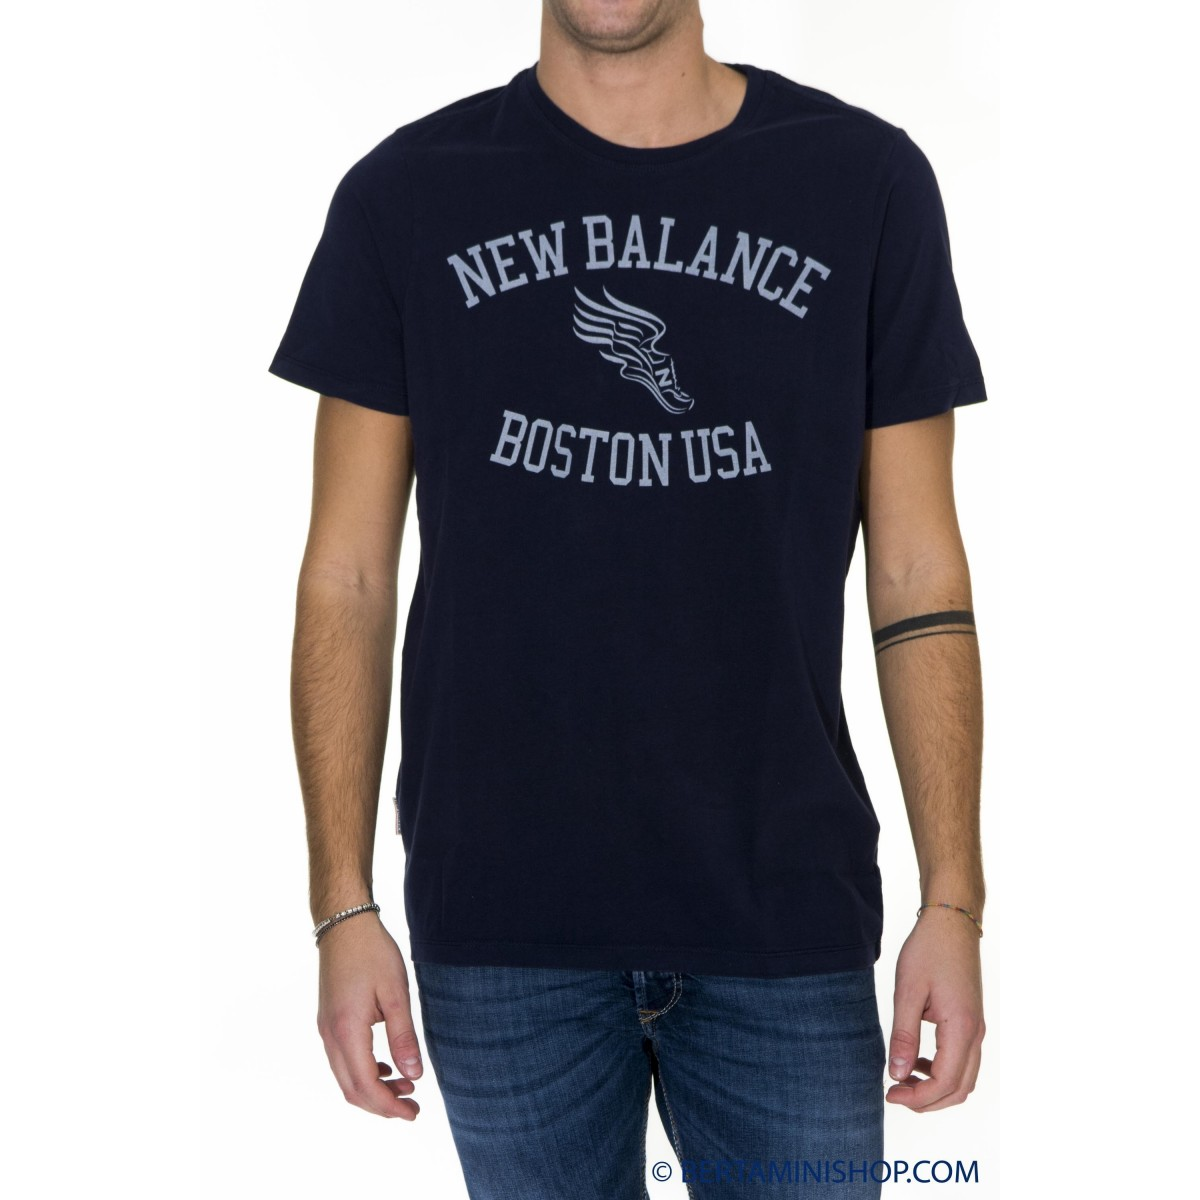 T-Shirt New Balance Manner - 16S105 T-Shirt 70 - Blue